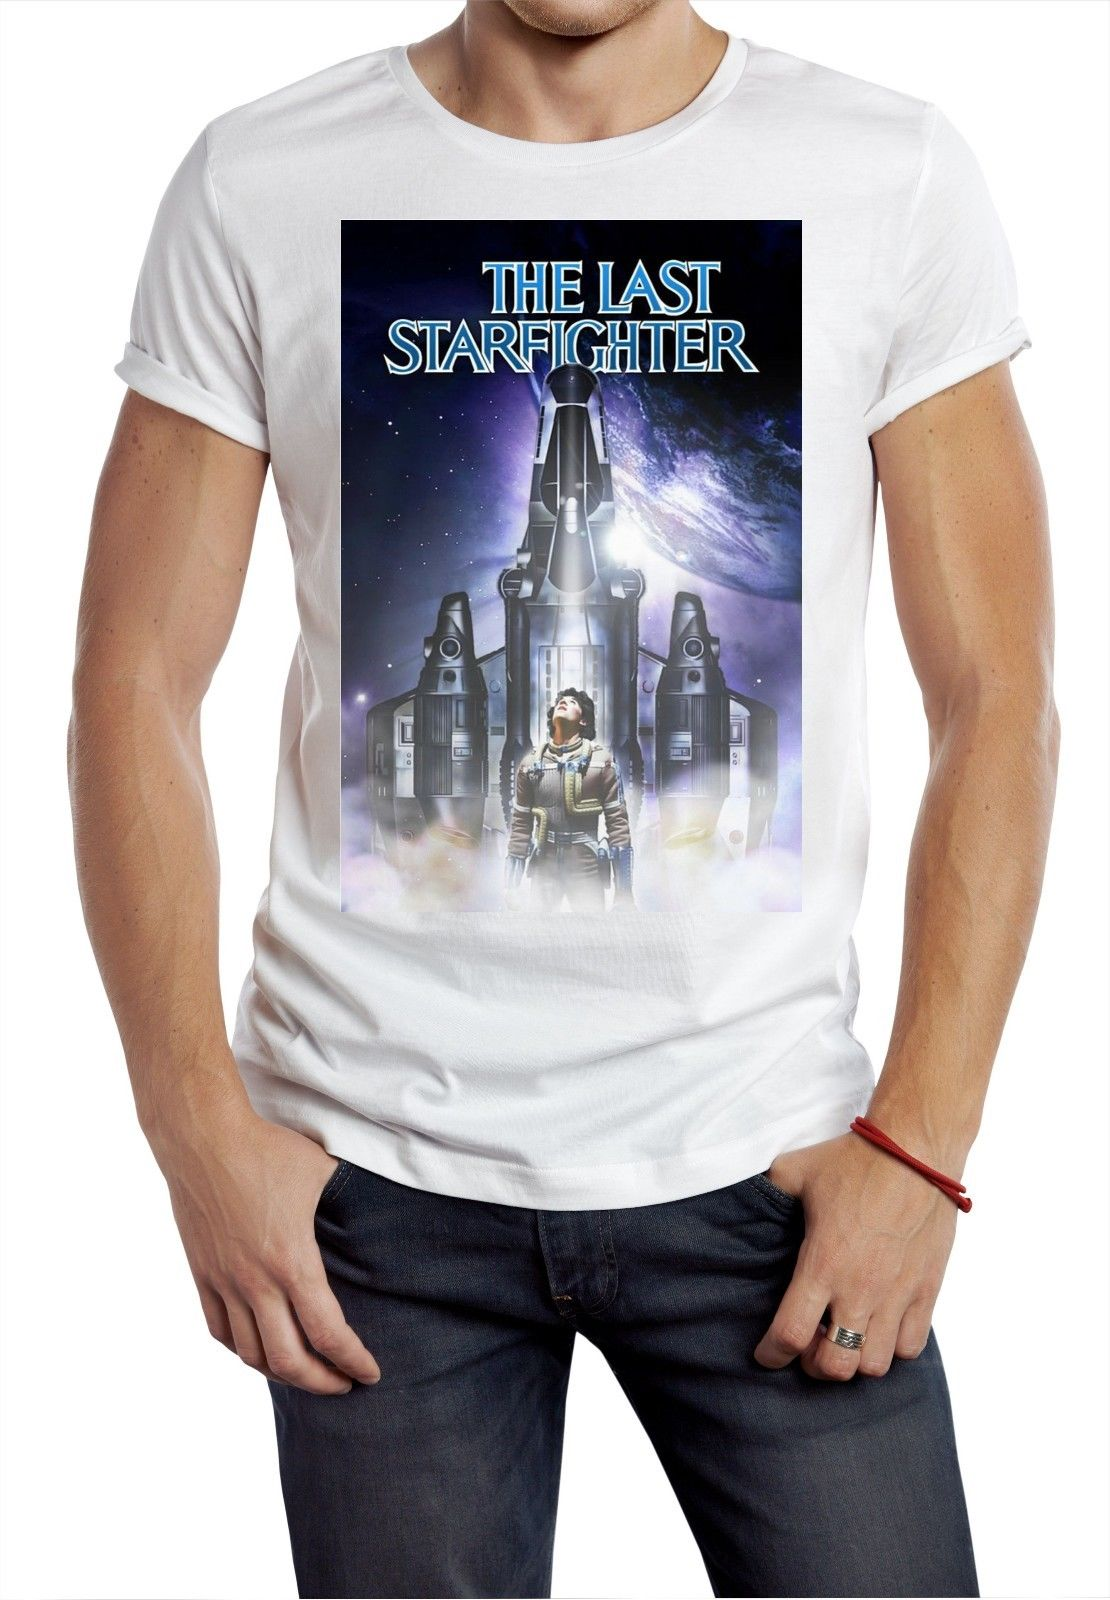 Last Starfighter T Shirt 80s Retro Gamer Movie Classic Cult Tee Space War Cool Fashion Men T-Shirt Free Shipping Top Tee image